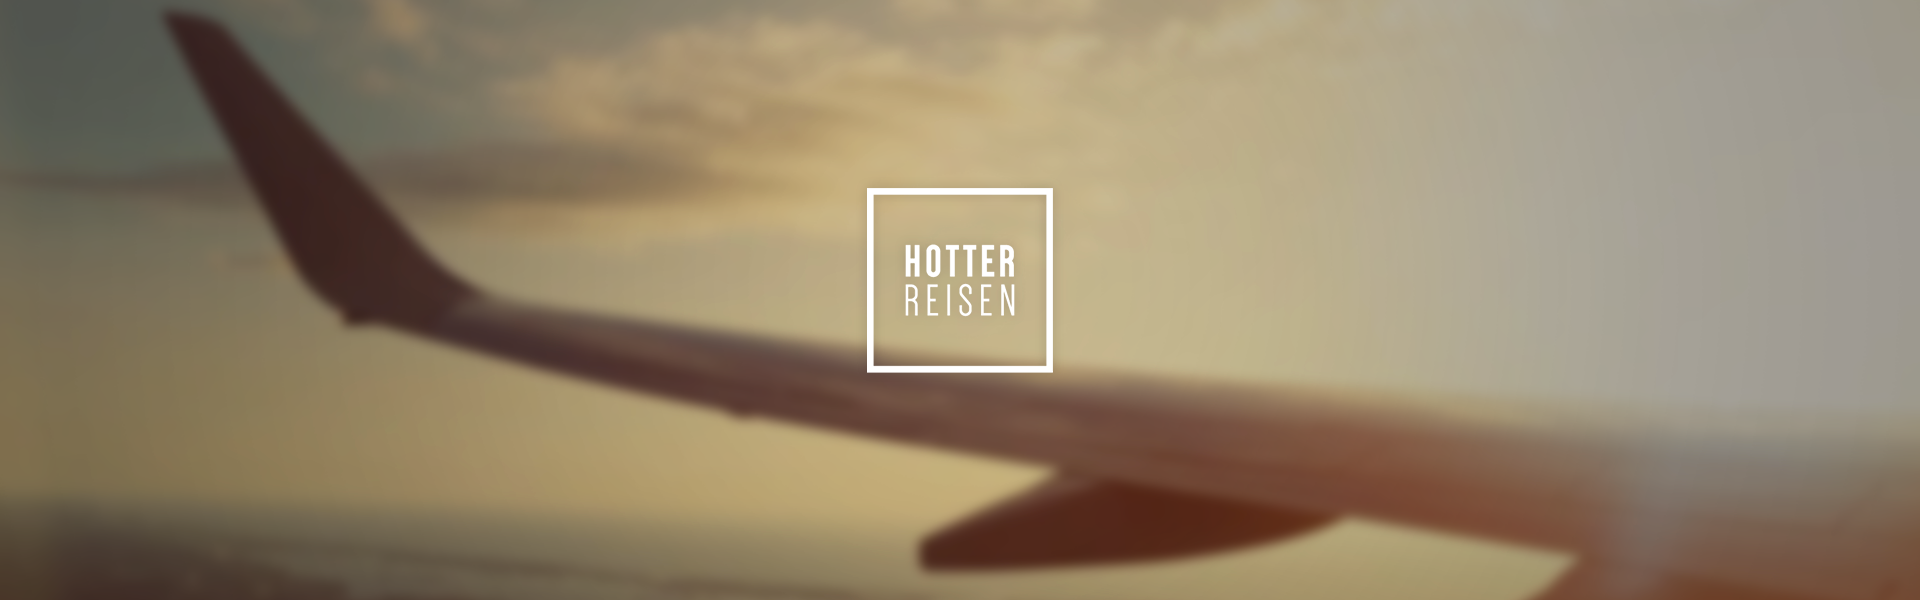 Corporate Design für Hotter Reisen